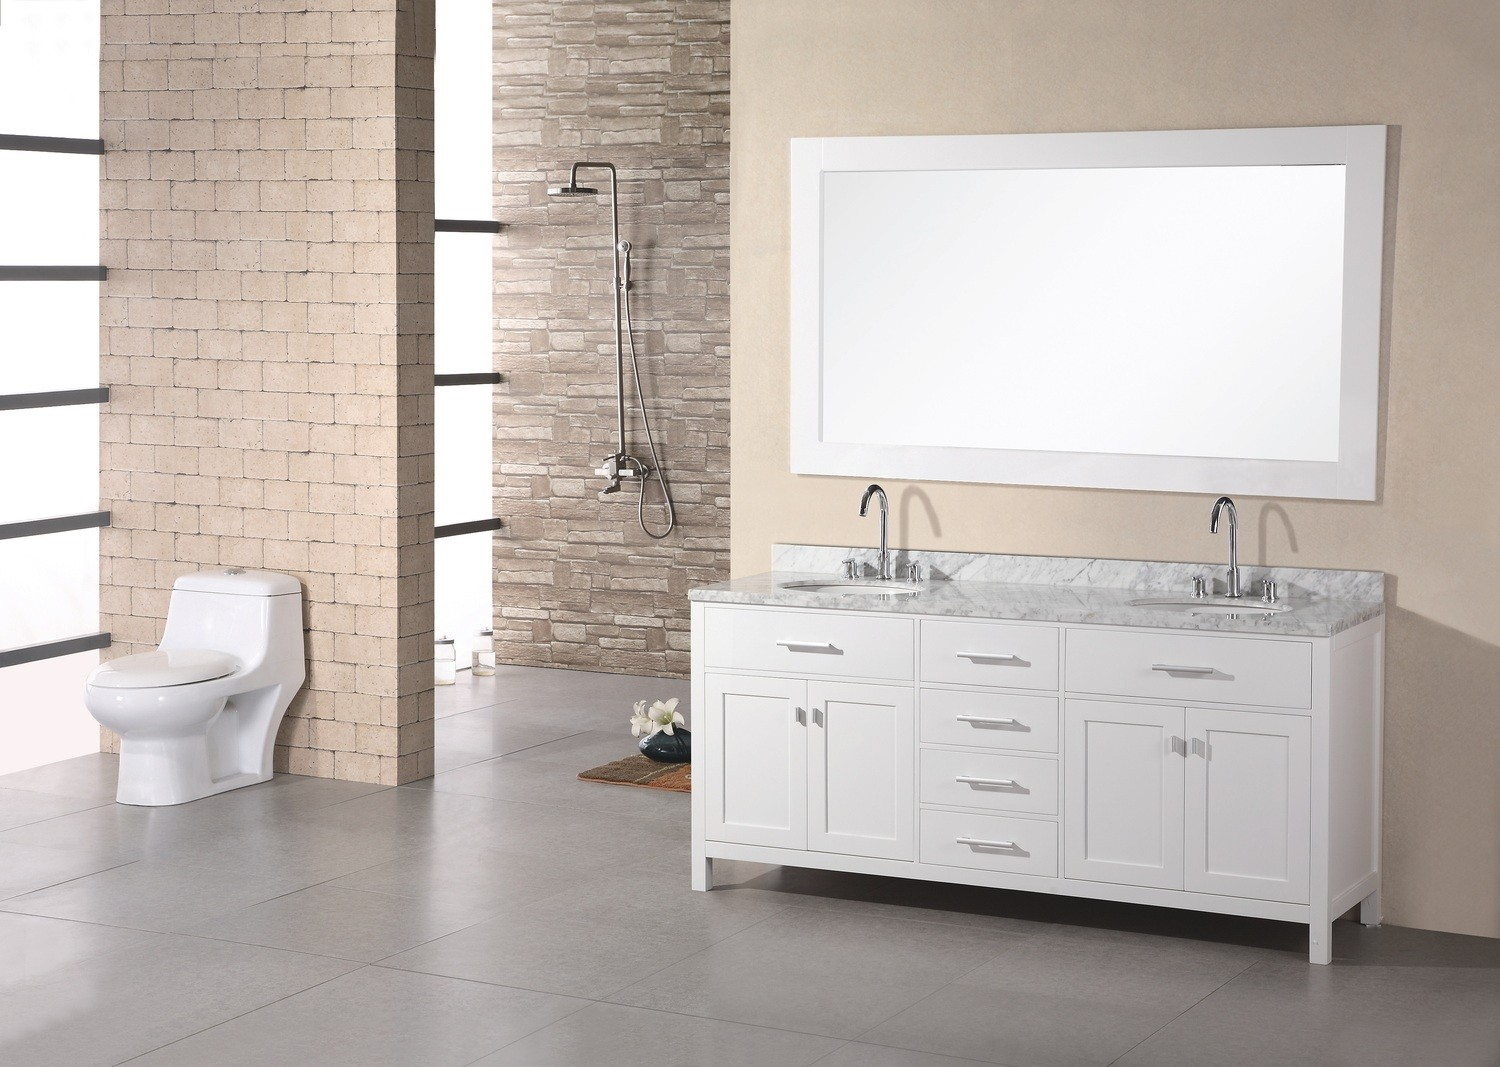 Entrancing 30 double bathroom vanities south africa for Bathroom cabinets co za